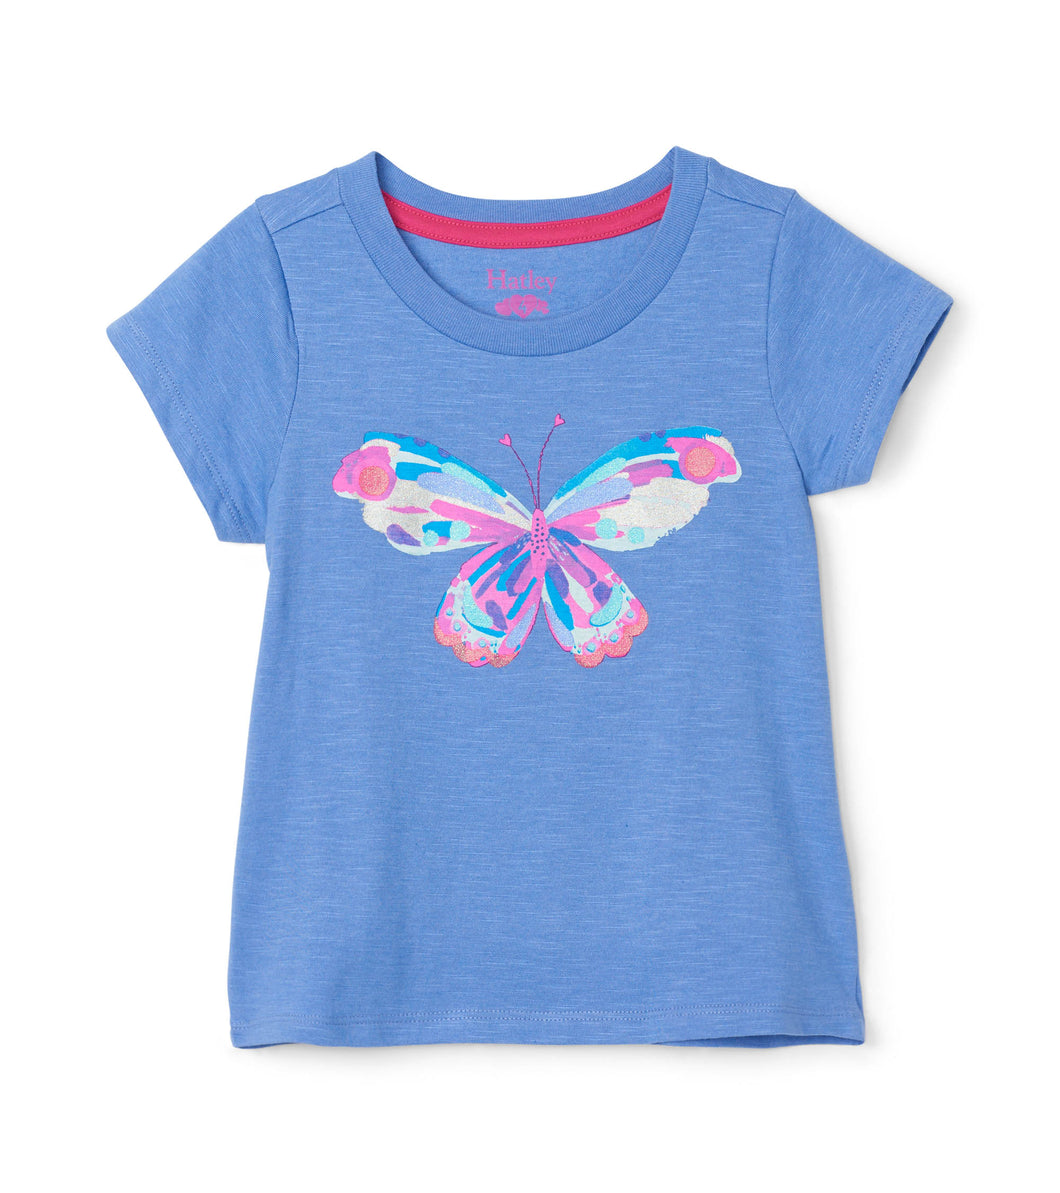 Soaring Butterfly Graphic Tee